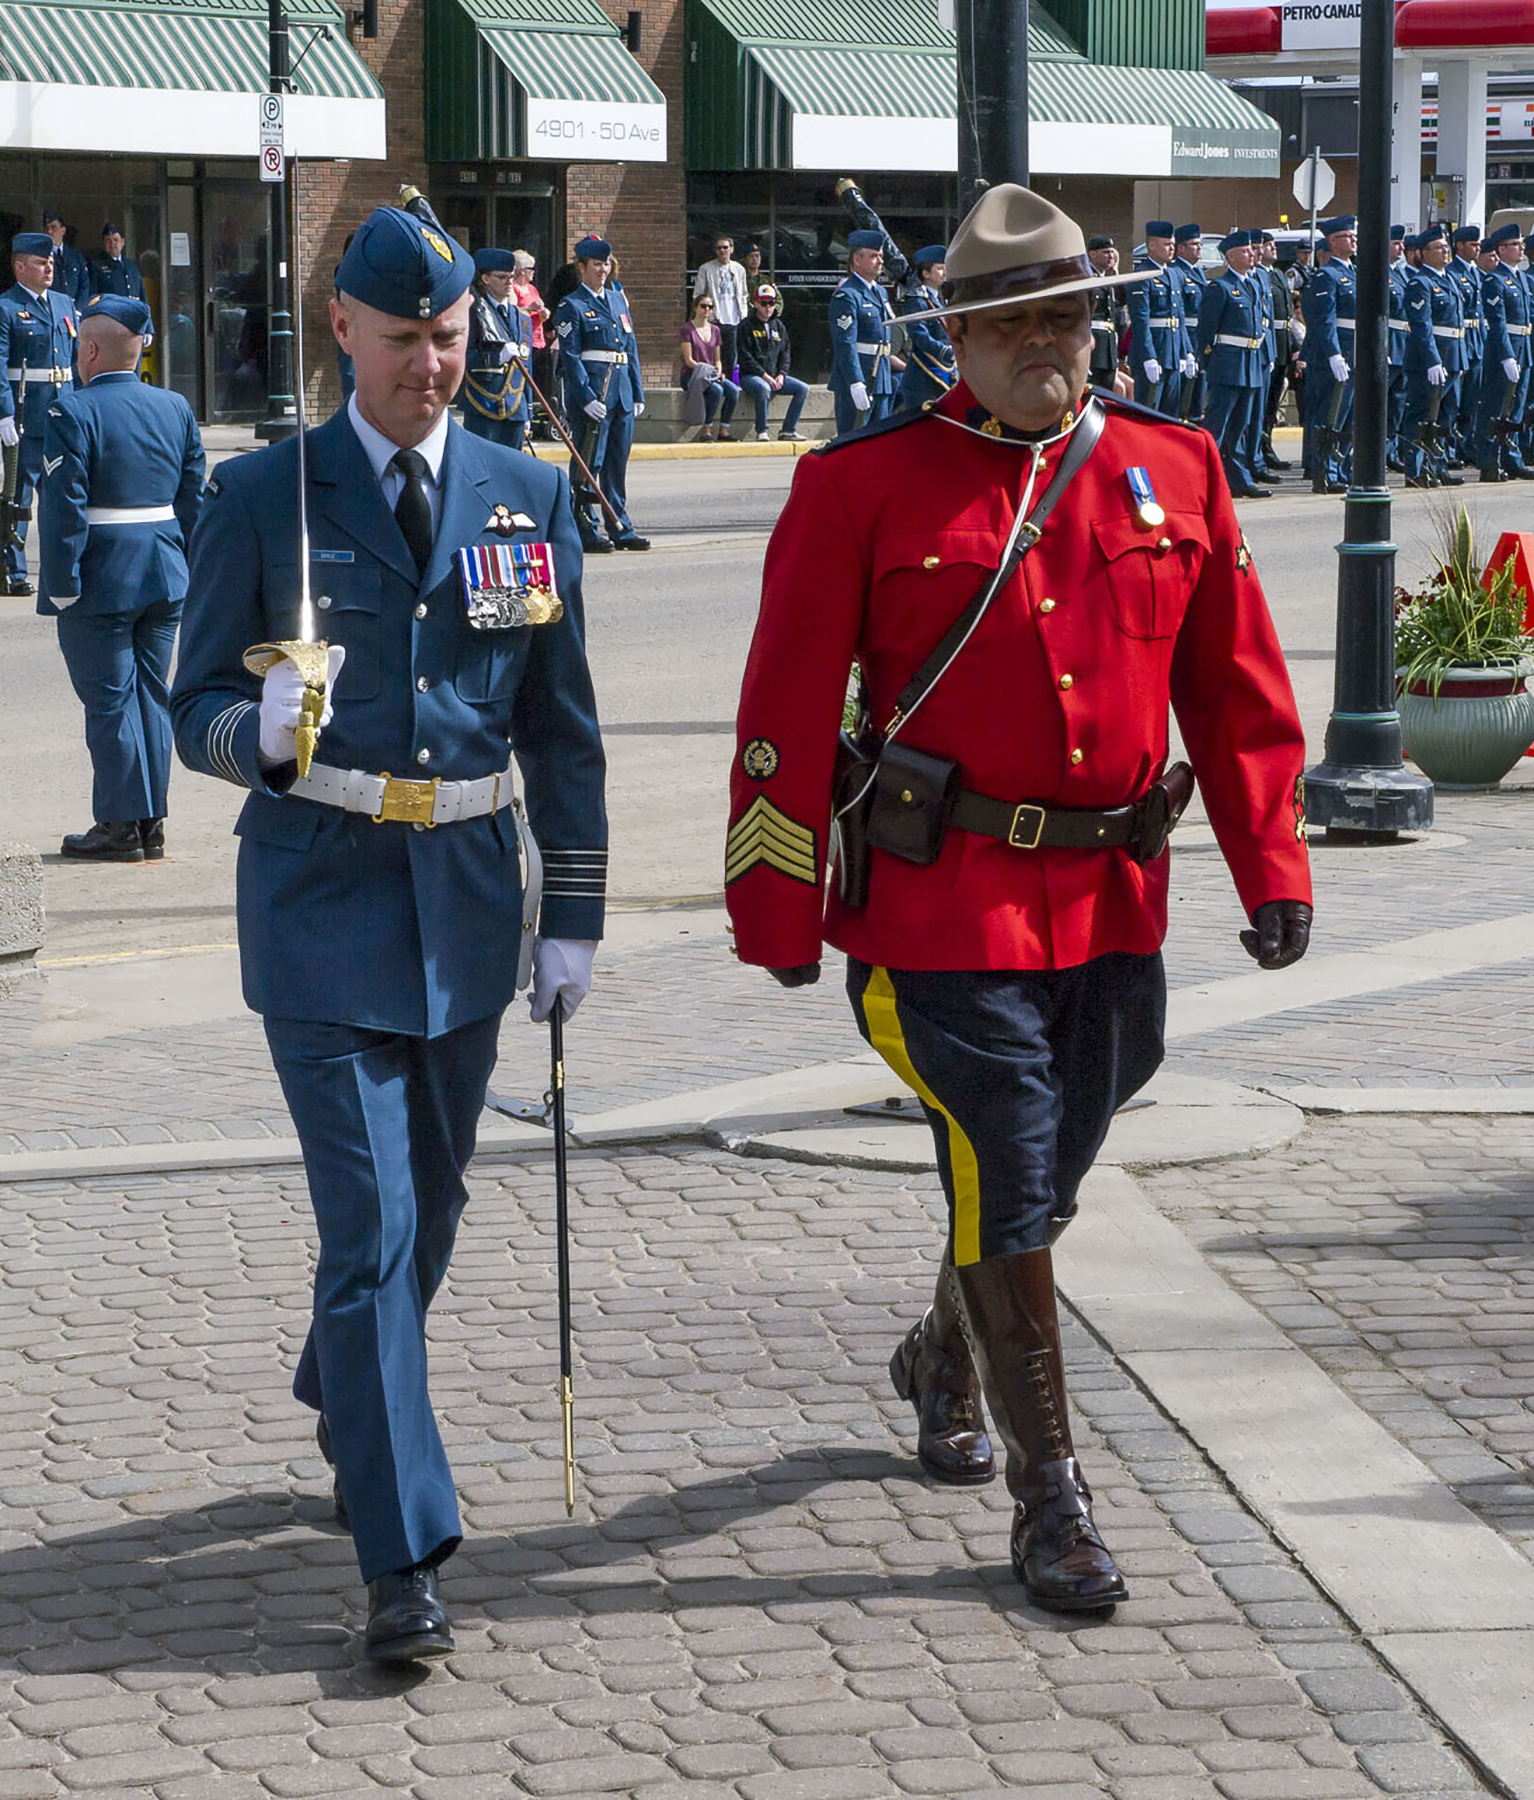 On May 5, 2017, Royal Canadian Mounted Police detachment commander Staff Sergeant Luis Gandolfi escorts 4 Wing Cold Lake, Alberta, commanding officer Colonel Paul Doyle to the Town of Bonnyville building, where, on behalf of 4 Wing, Colonel Doyle accepted the Freedom of the City for the Town of Bonnyville and Municipal District of Bonnyville, Alberta. PHOTO: Corporal Justin Roy, CK07-2017-0343-001